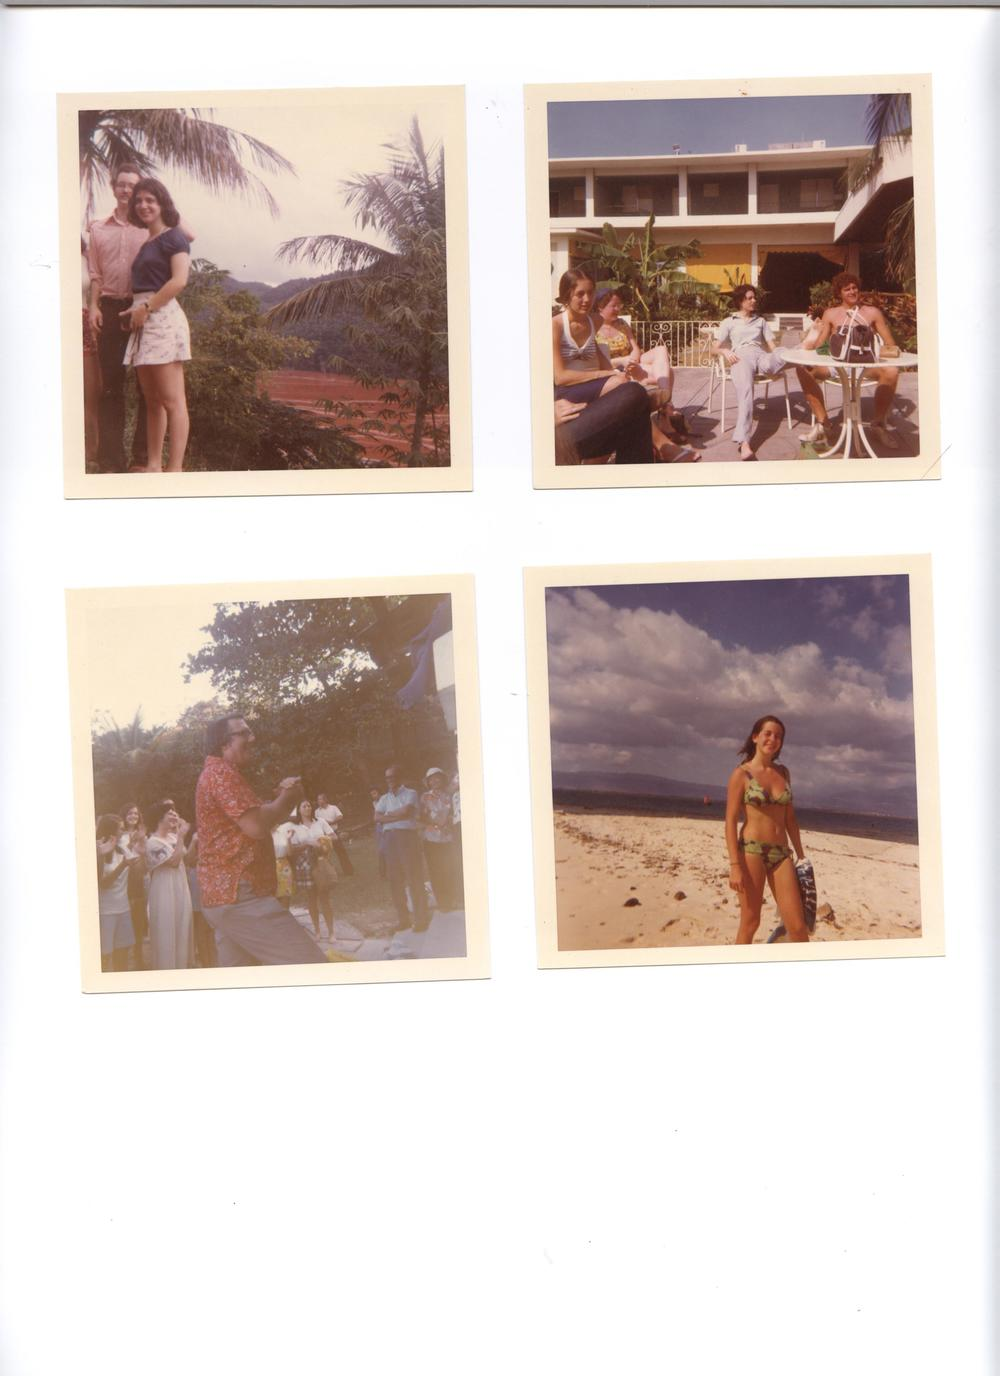 Top left – Two Glee Club members standing in front of bauxite lake  Top right – Glee Club members relaxing  Bottom left – Walter Nollner conducting at the Governor's Mansion concert  Bottom right – me on the beach     Photos courtesy of [Nancy (Lester) du Tertre '77/ '78]